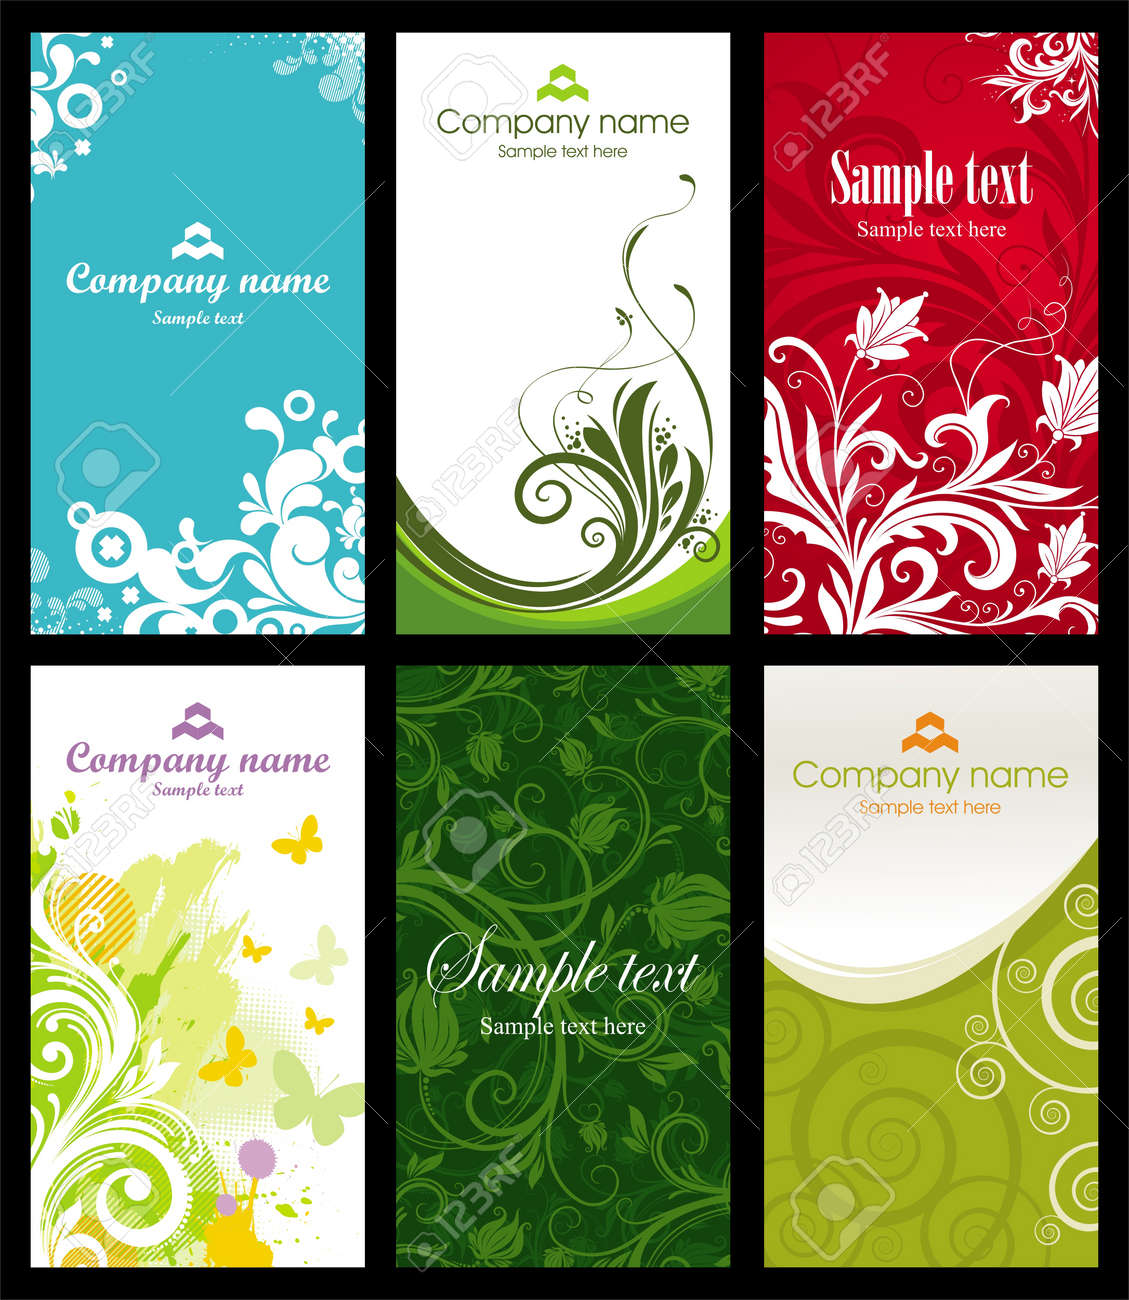 Vector set of six vertical ornate & pattern business cards - 9902995